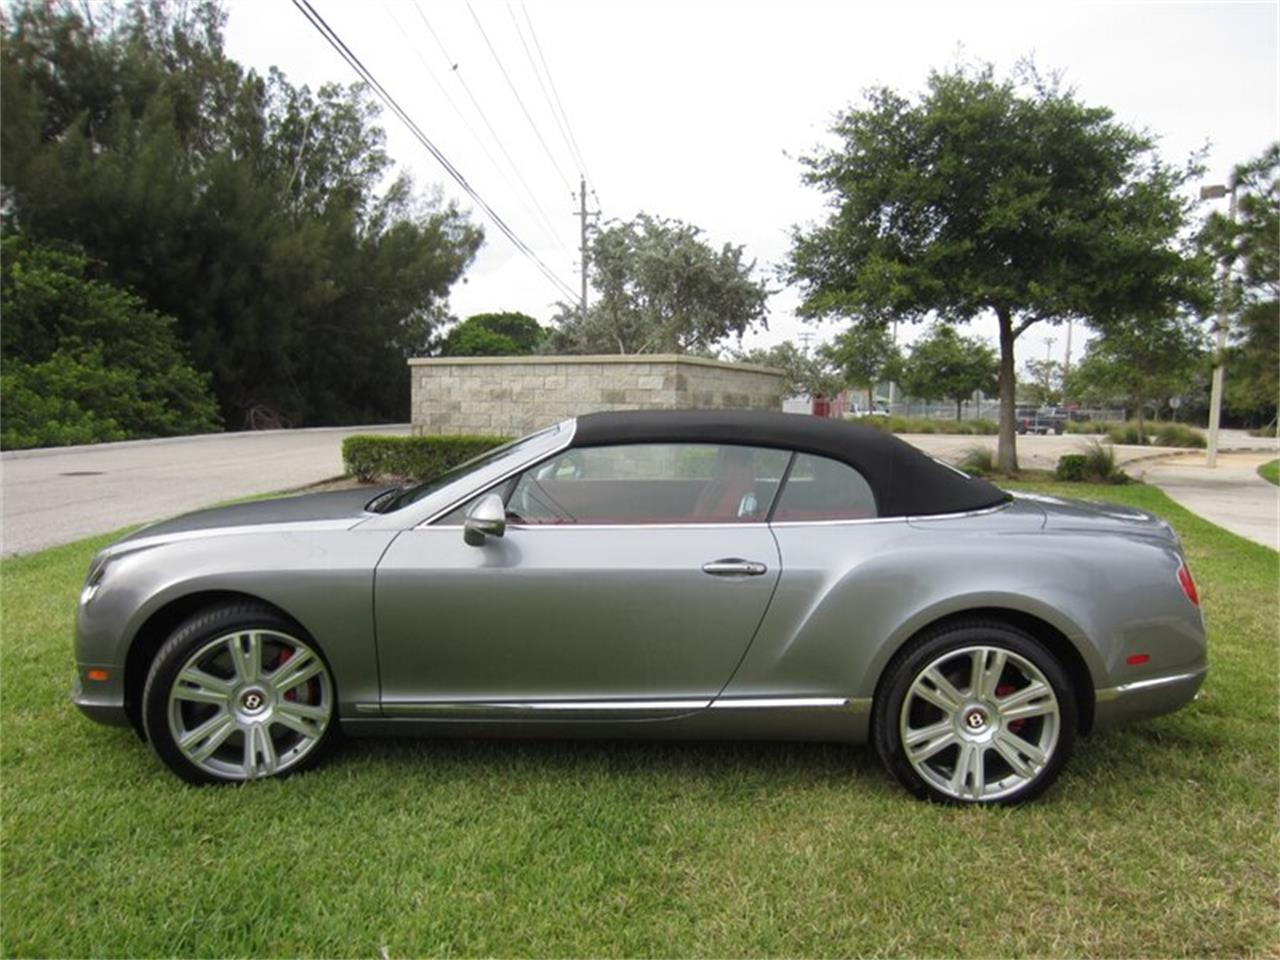 2013 Bentley Continental GTC V8 for sale in Delray Beach, FL – photo 23